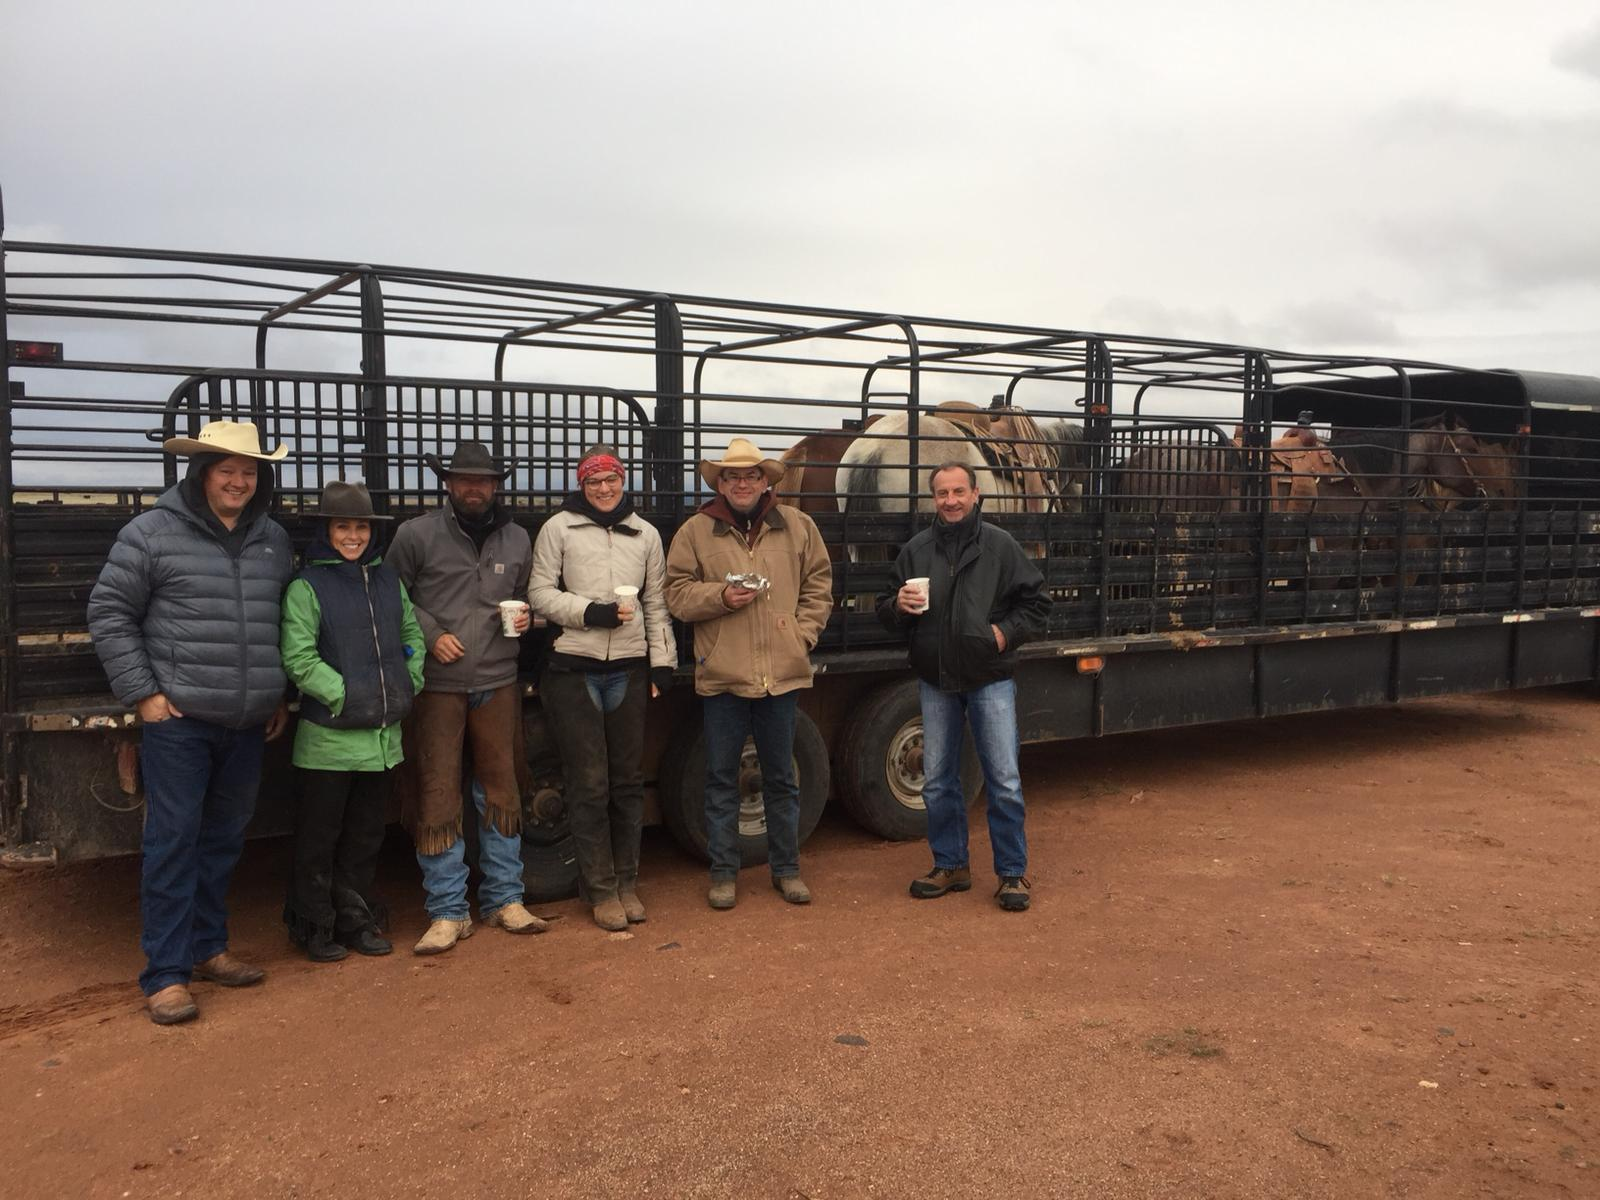 Yep, it got colder as you can tell by the thick jackets ;-) Here our team in front of a trailer at the Fuchs Ranch, where we helped family Fuchs to gathering their cattle. Left to right: James, Carol, Rob, Leonie, Oli and Dietmar. Daniela is missing, because she took this picture - thanks Dani!  Ja, es wurde wieder kälter, wie man an den dicken Jacken sehen kann ;-) Hier unser Team vor einem Anhänger auf der Fuchs Ranch, wo wir Familie Fuchs geholfen haben, ihre Rinder zusammen zu treiben. Links nach rechts: James, Carol, Rob, Leonie, Oli und Dietmar. Nur Daniela fehlt, da sie das Foto gemacht hat - danke Dani!